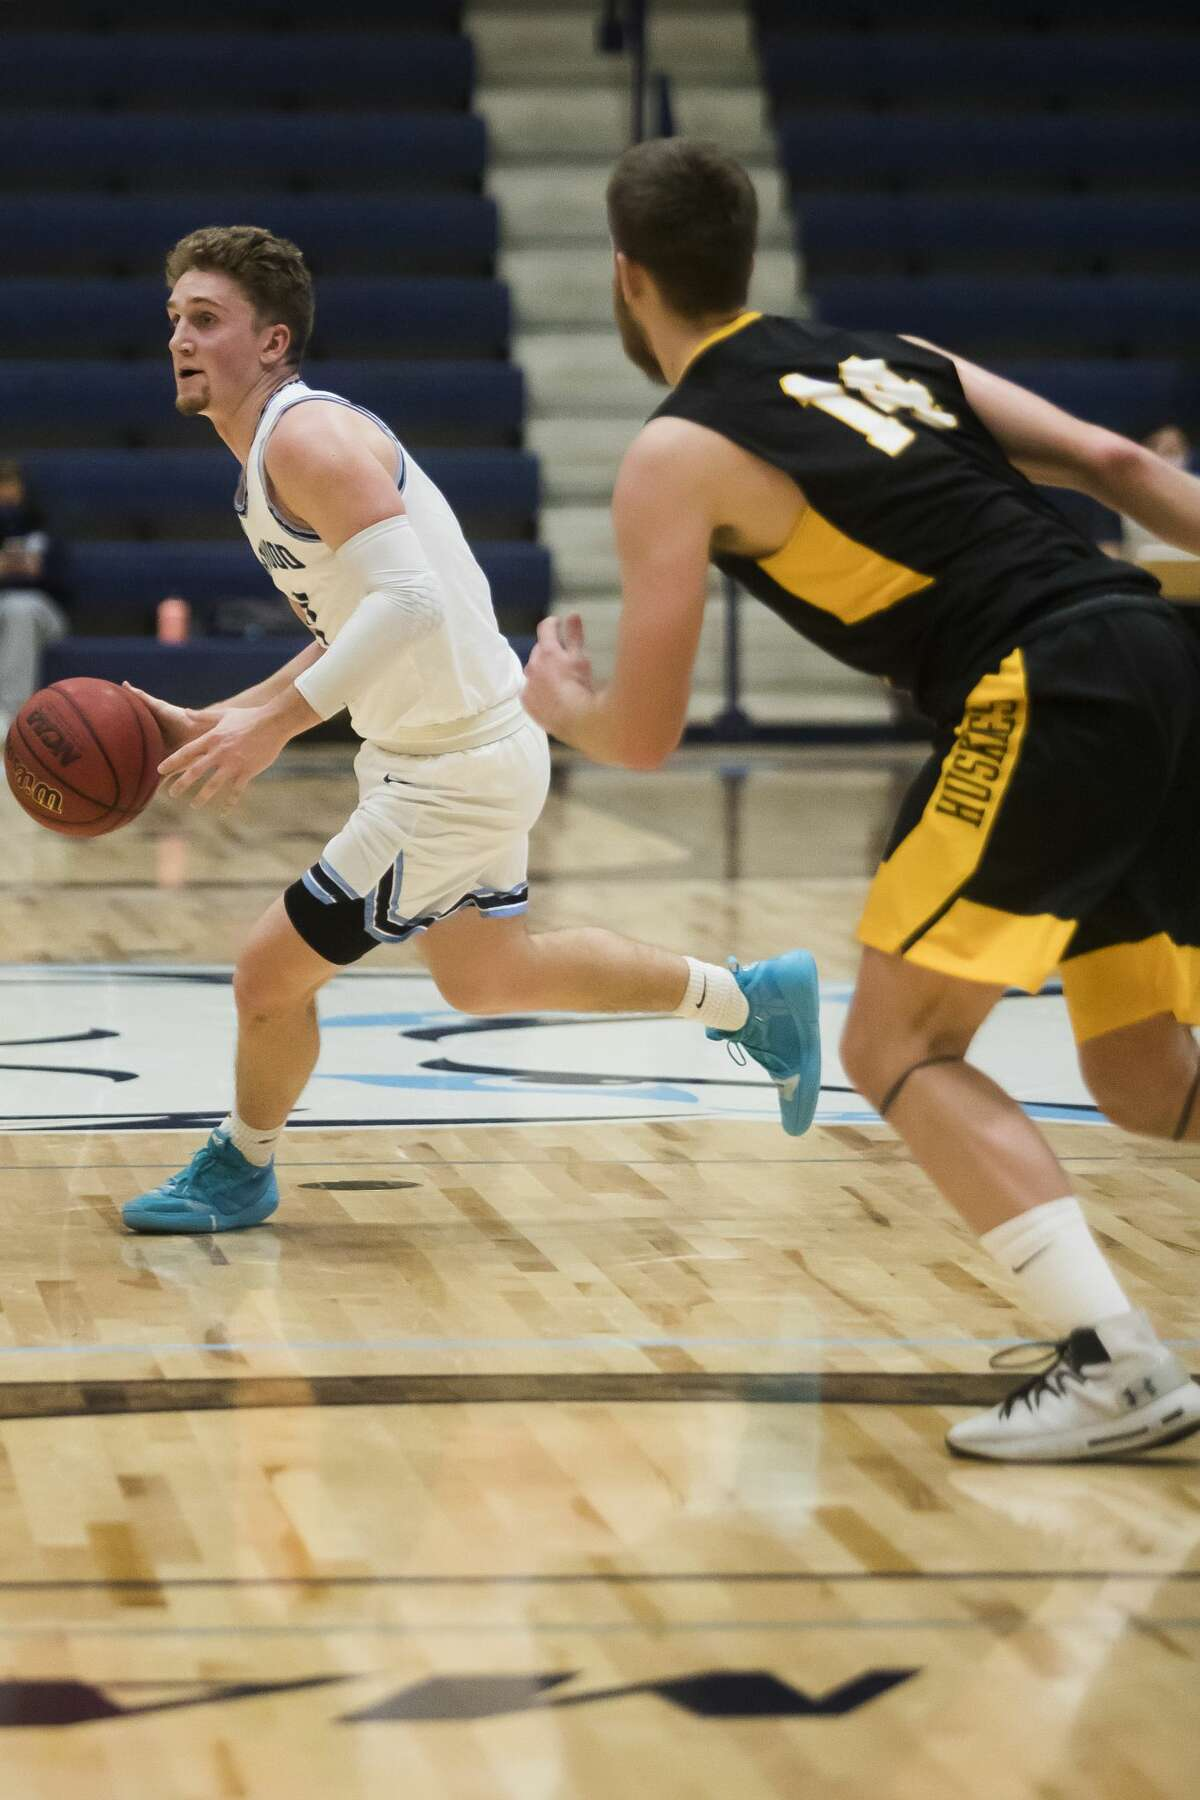 Northwood's Jack Ammerman dribbles down the court during the Timberwolves' game against Michigan Tech Friday, Jan. 15, 2021 at Northwood University. (Katy Kildee/kkildee@mdn.net)